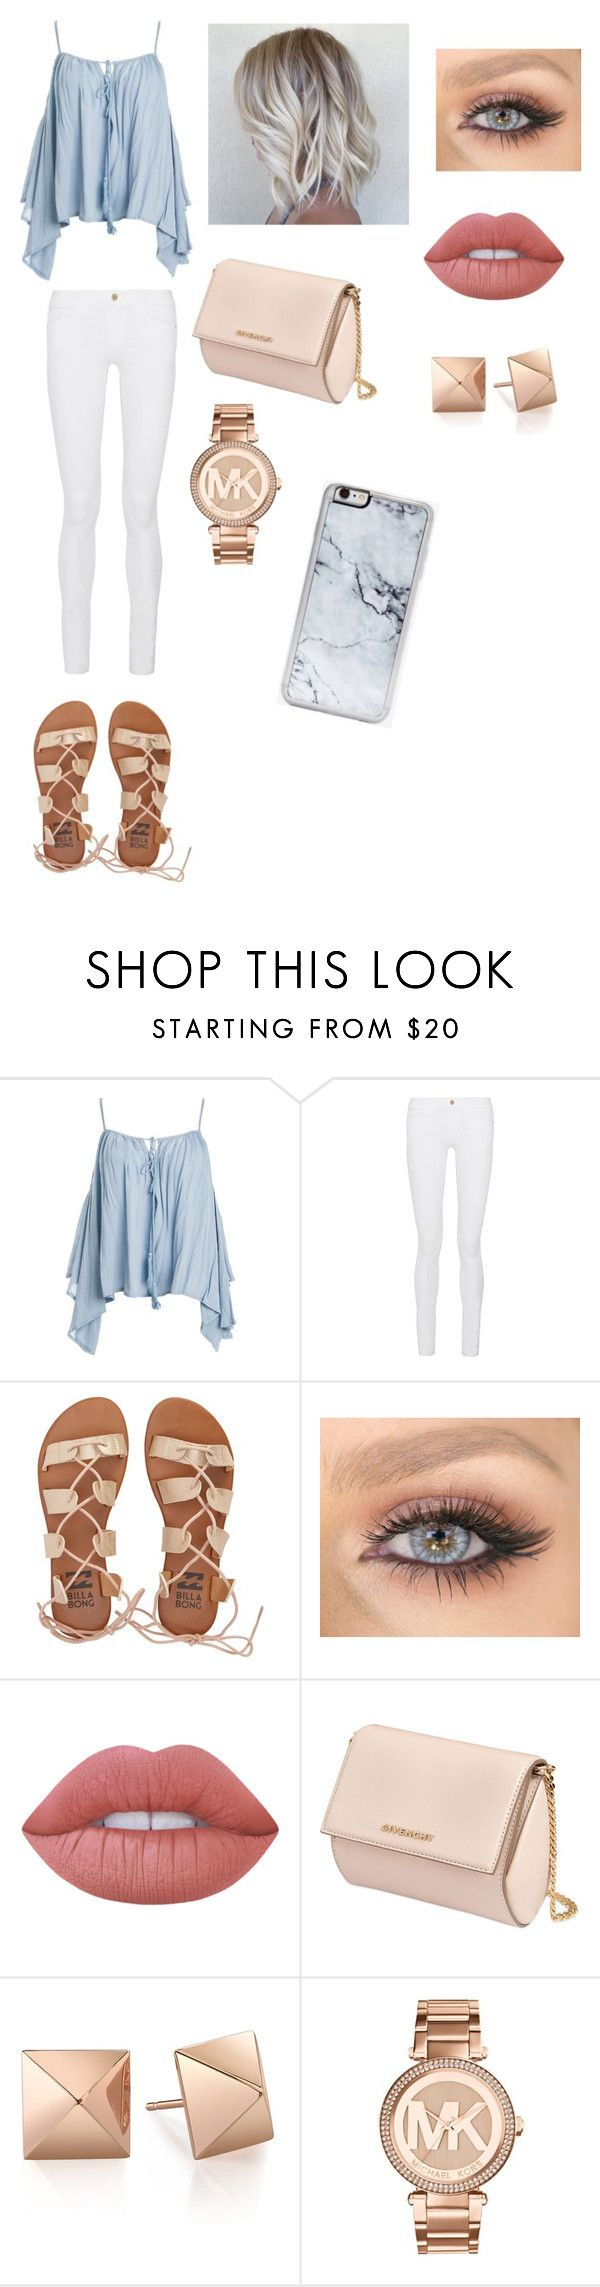 """""""Untitled #266"""" by julia1325 on Polyvore featuring Sans Souci, Frame Denim, Billabong, Lime Crime, Givenchy, Michael Kors and Zero Gravity"""